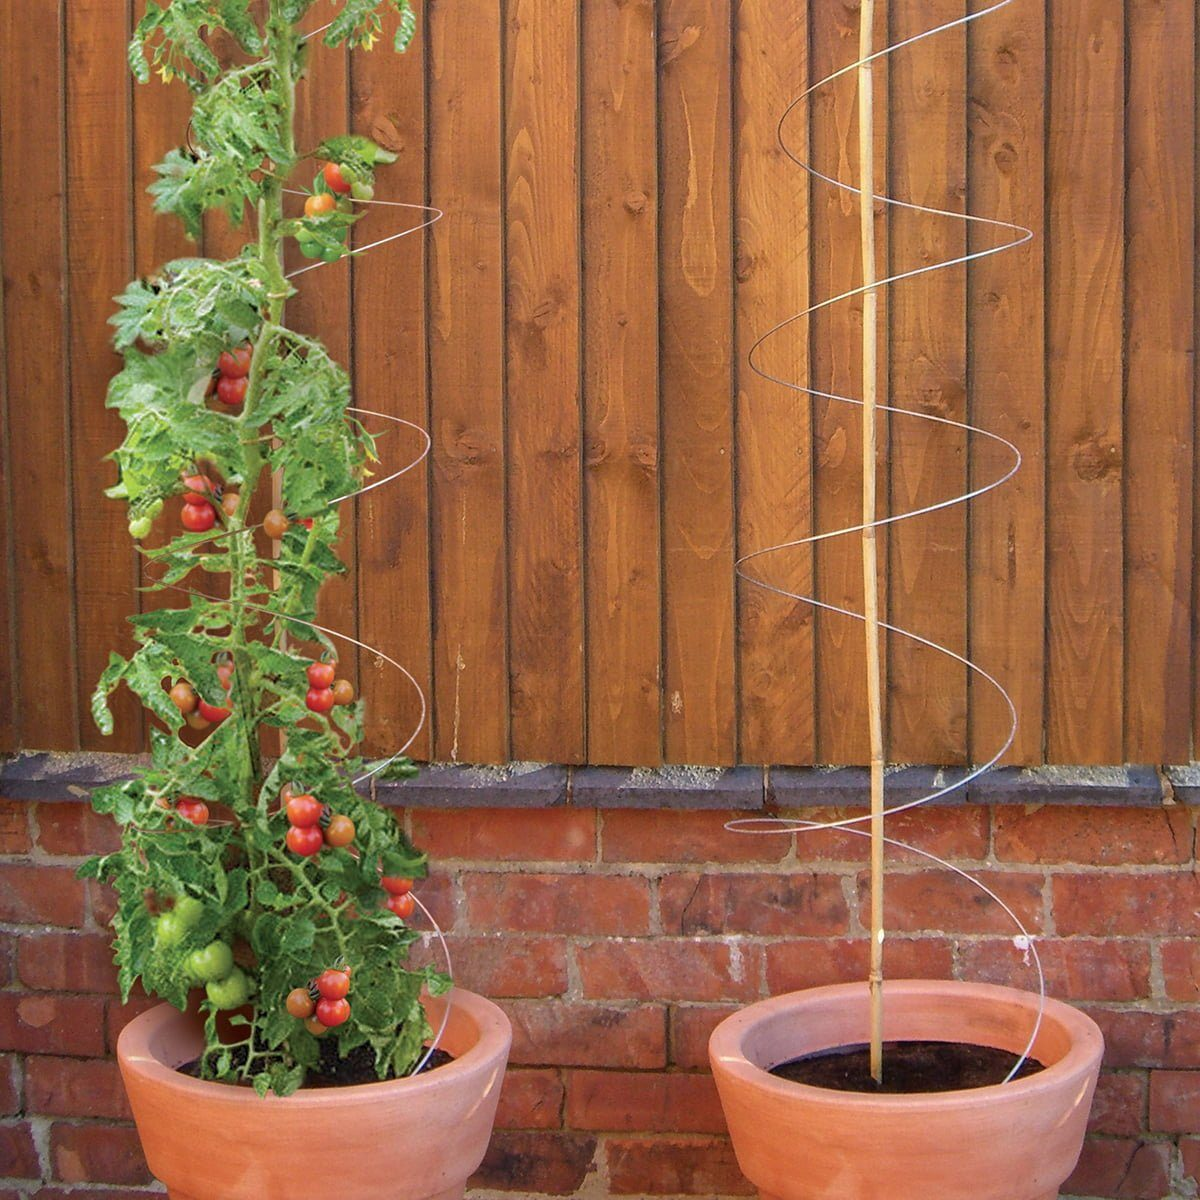 Plant twisters in pot and with tomatoes